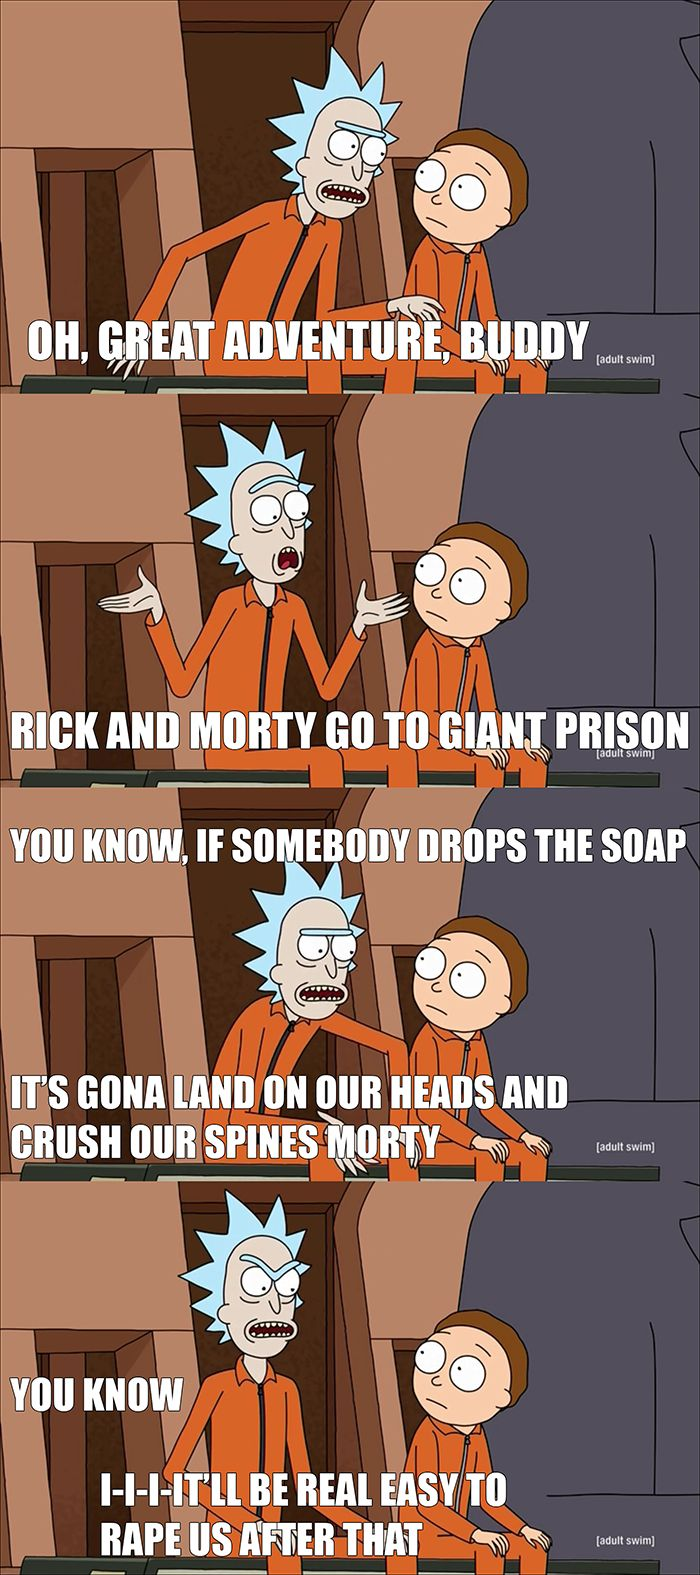 Best Rick And Morty Quotes 81 Best Rick And Morty Images On Pinterest  Funny Photos Funny .